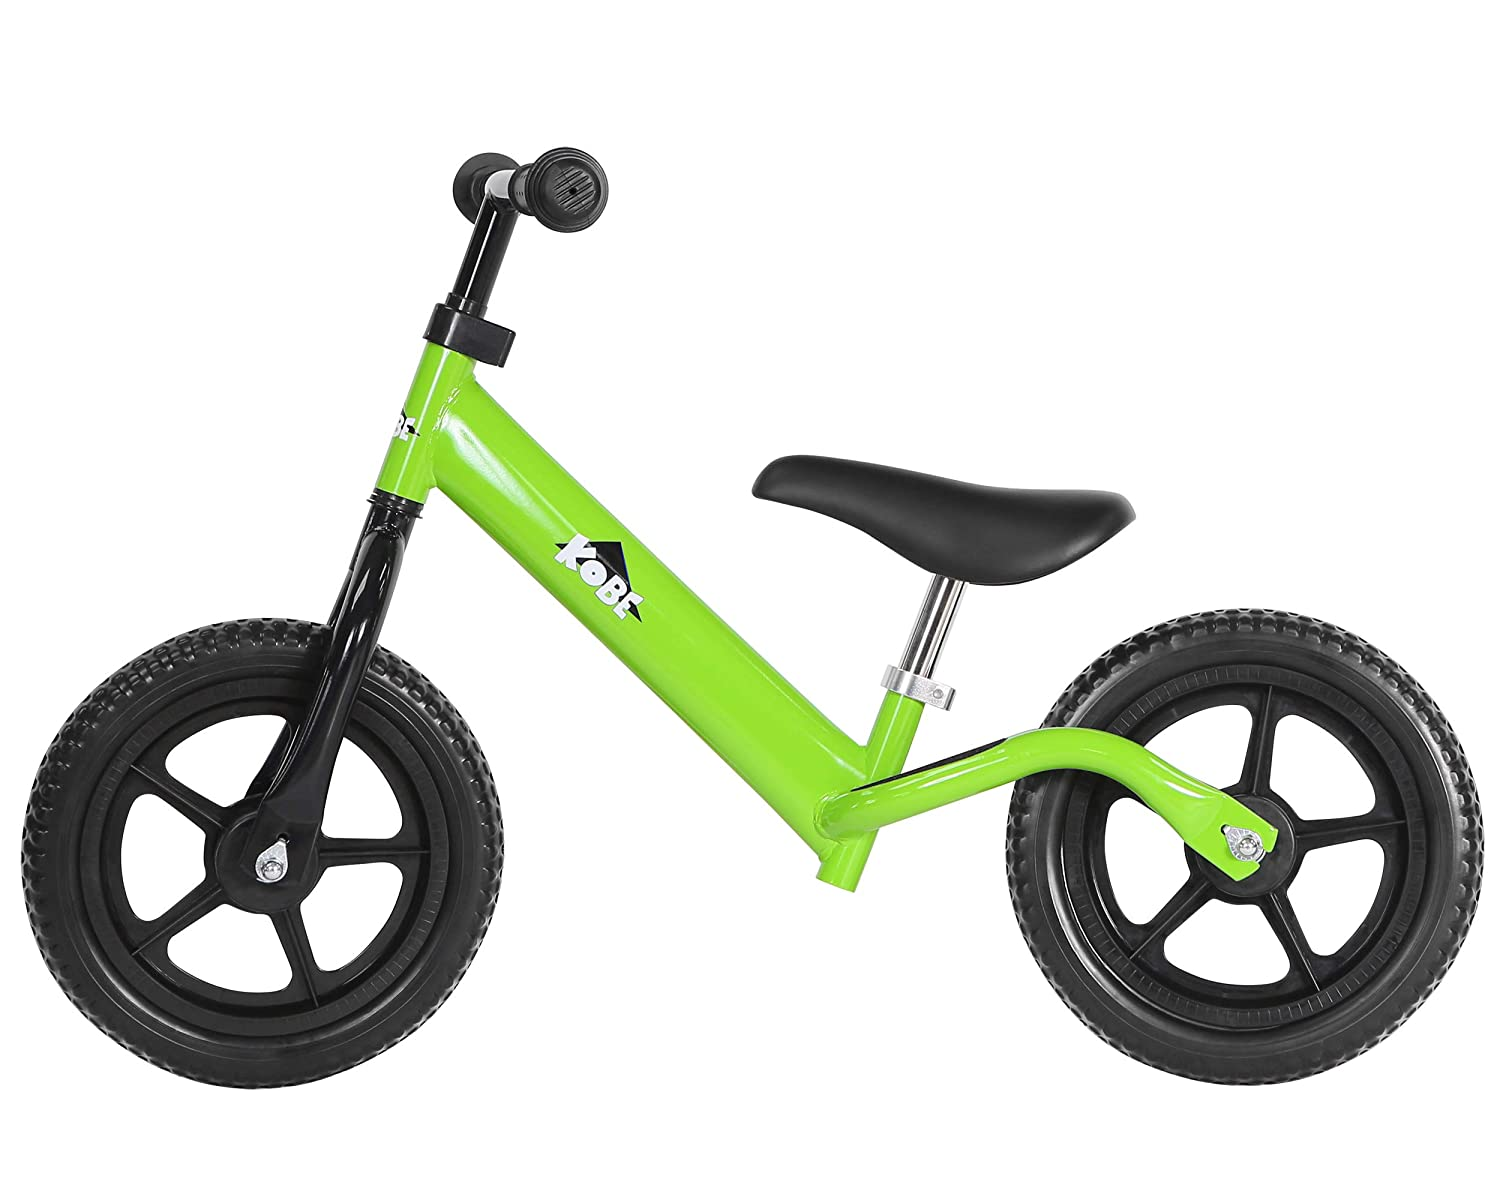 Kobe Aluminum Balance Bike - Lightest Pre-Bicycle - Ages 18 months - 5 years - GREEN 40-20010